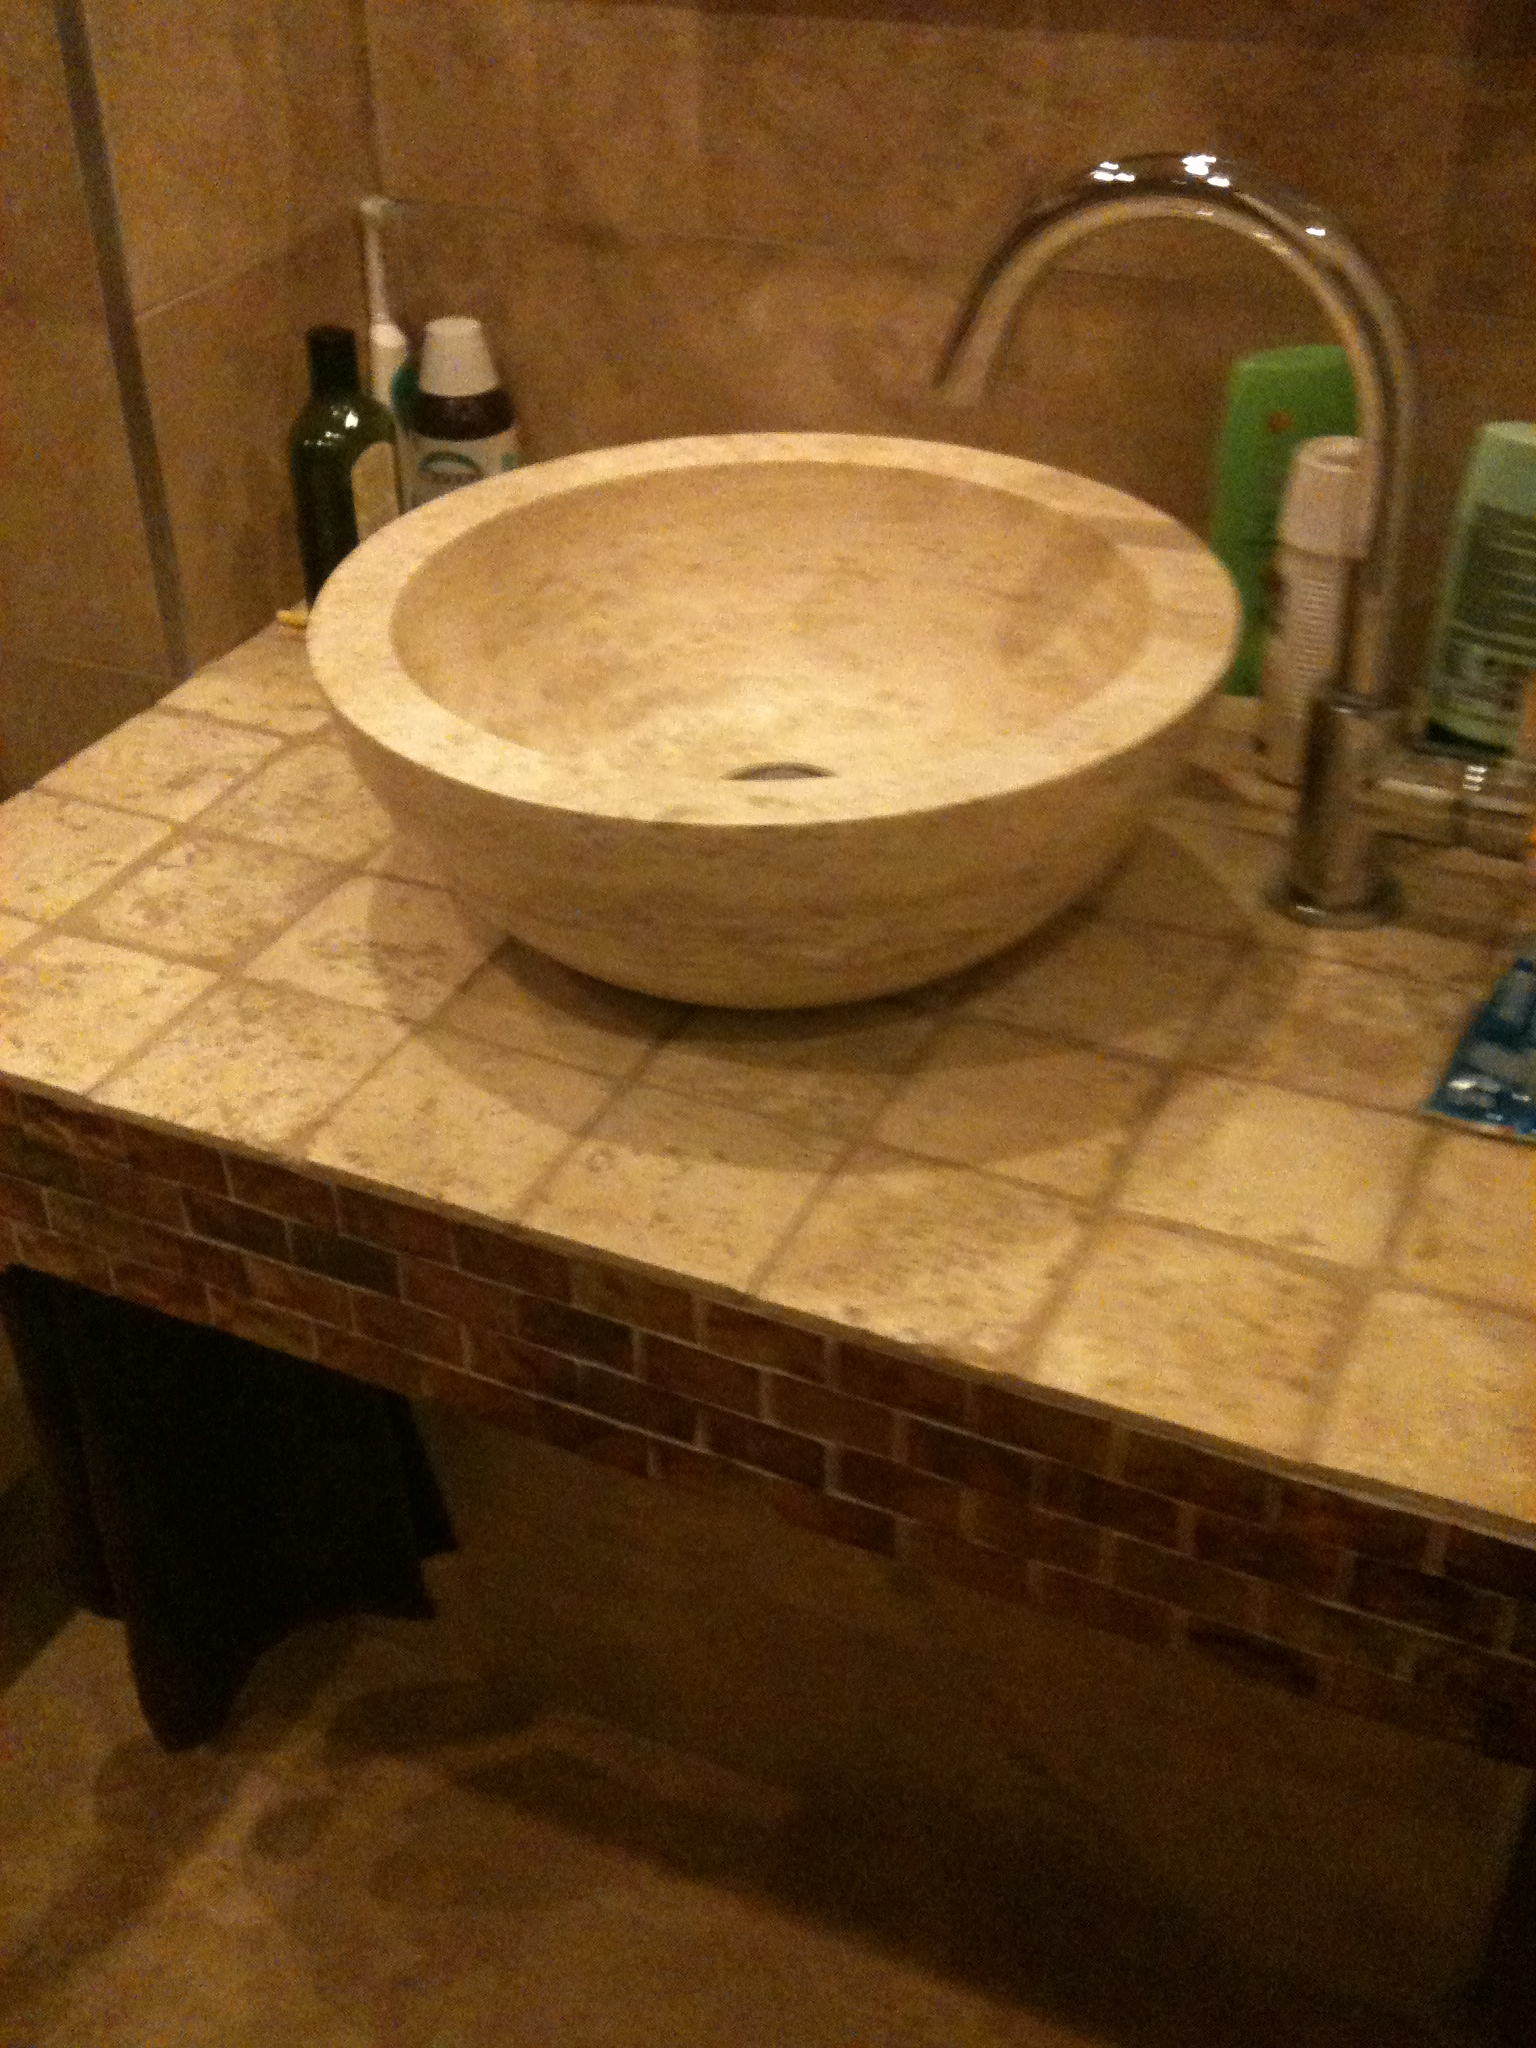 Here is a travertine sink on a stand that i built and tiled